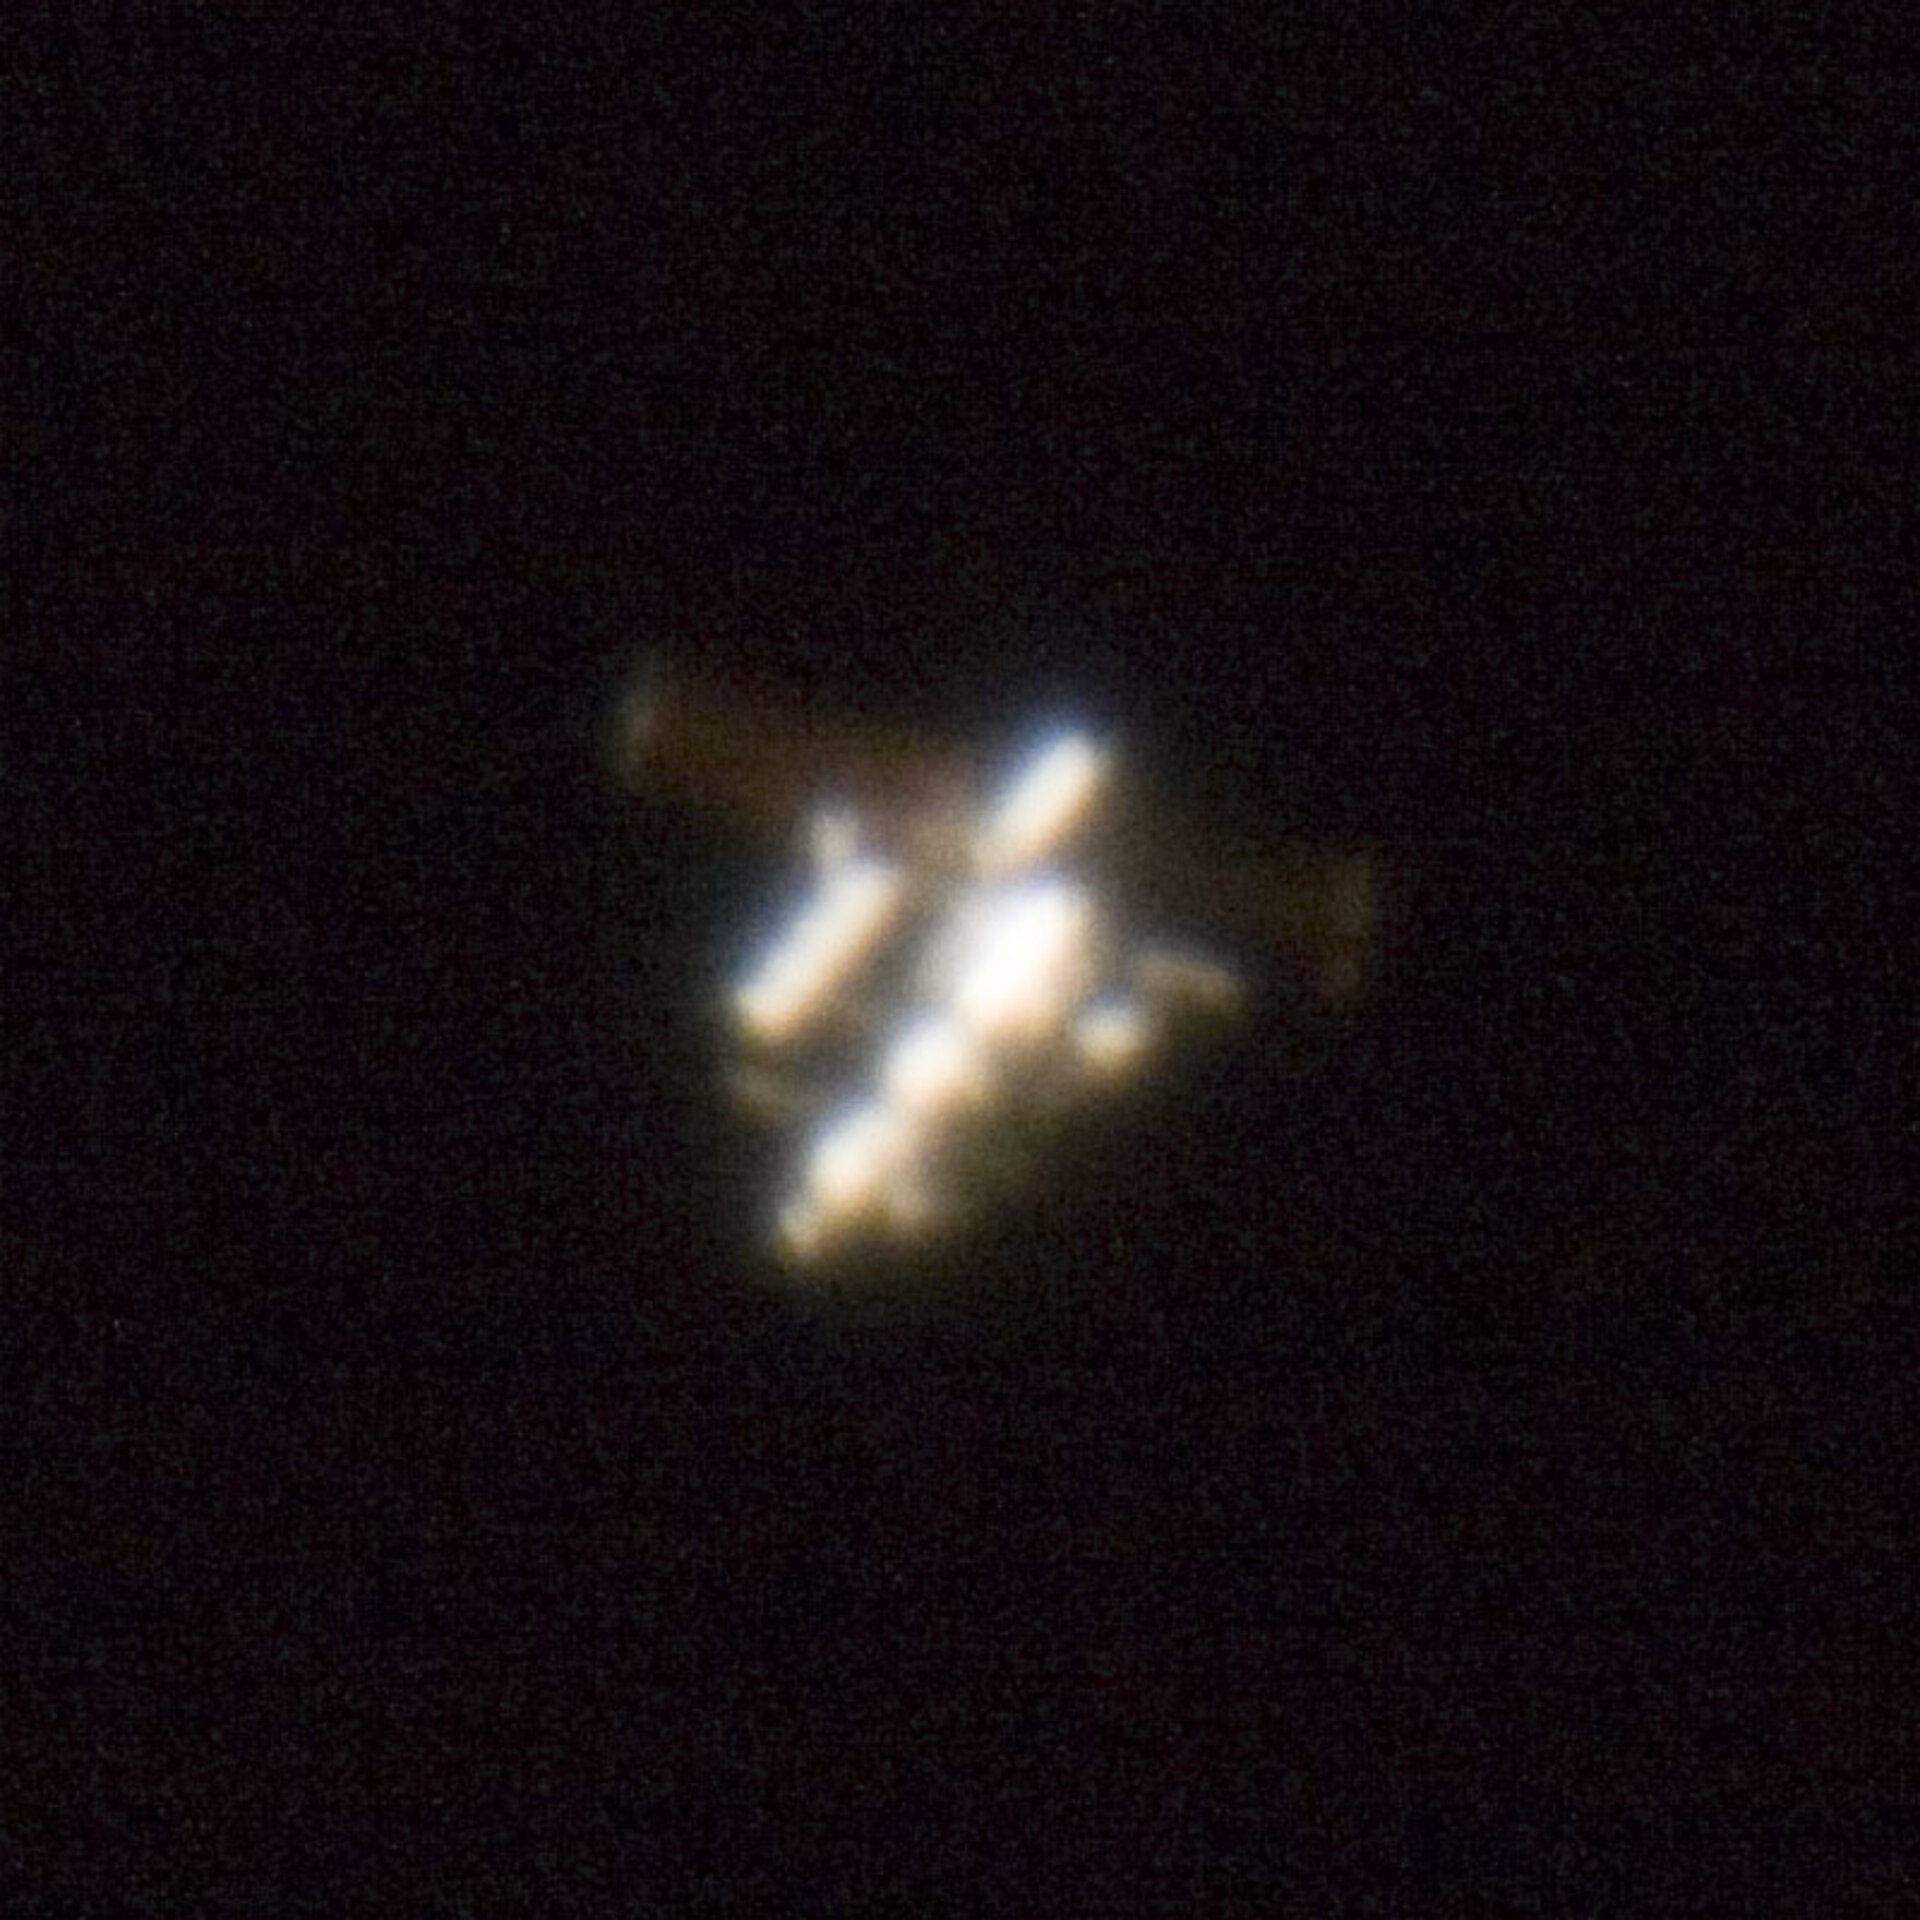 The ISS can be photographed from Earth - a team in Munich captured this detailed image on 12 June 2006